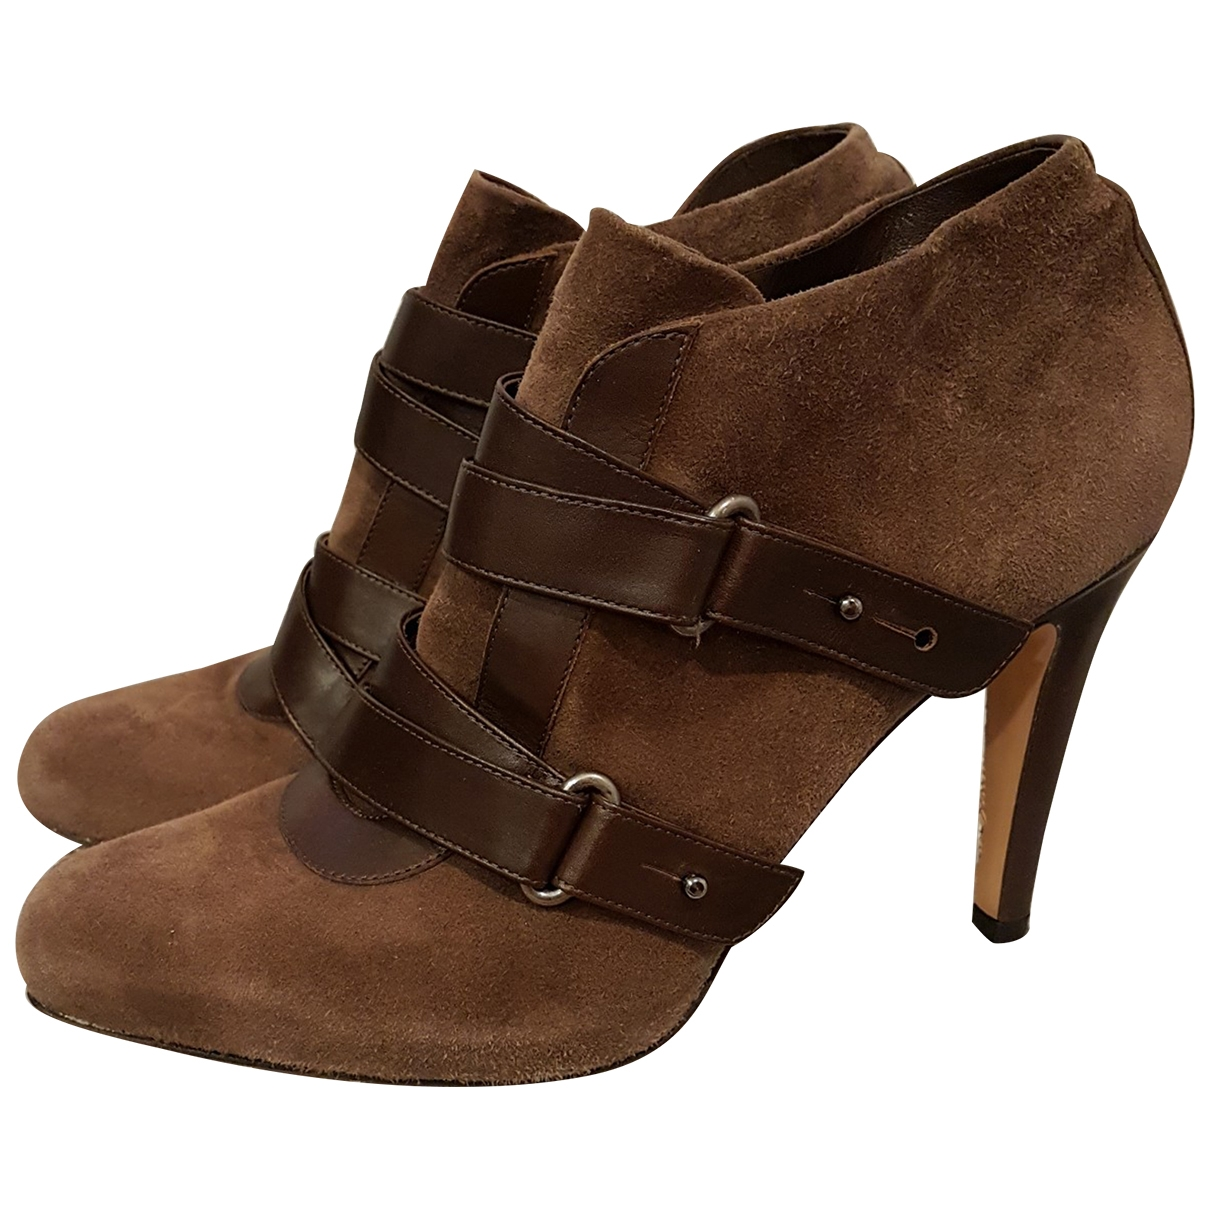 Gianvito Rossi Gianvito Brown Suede Ankle boots for Women 40 EU